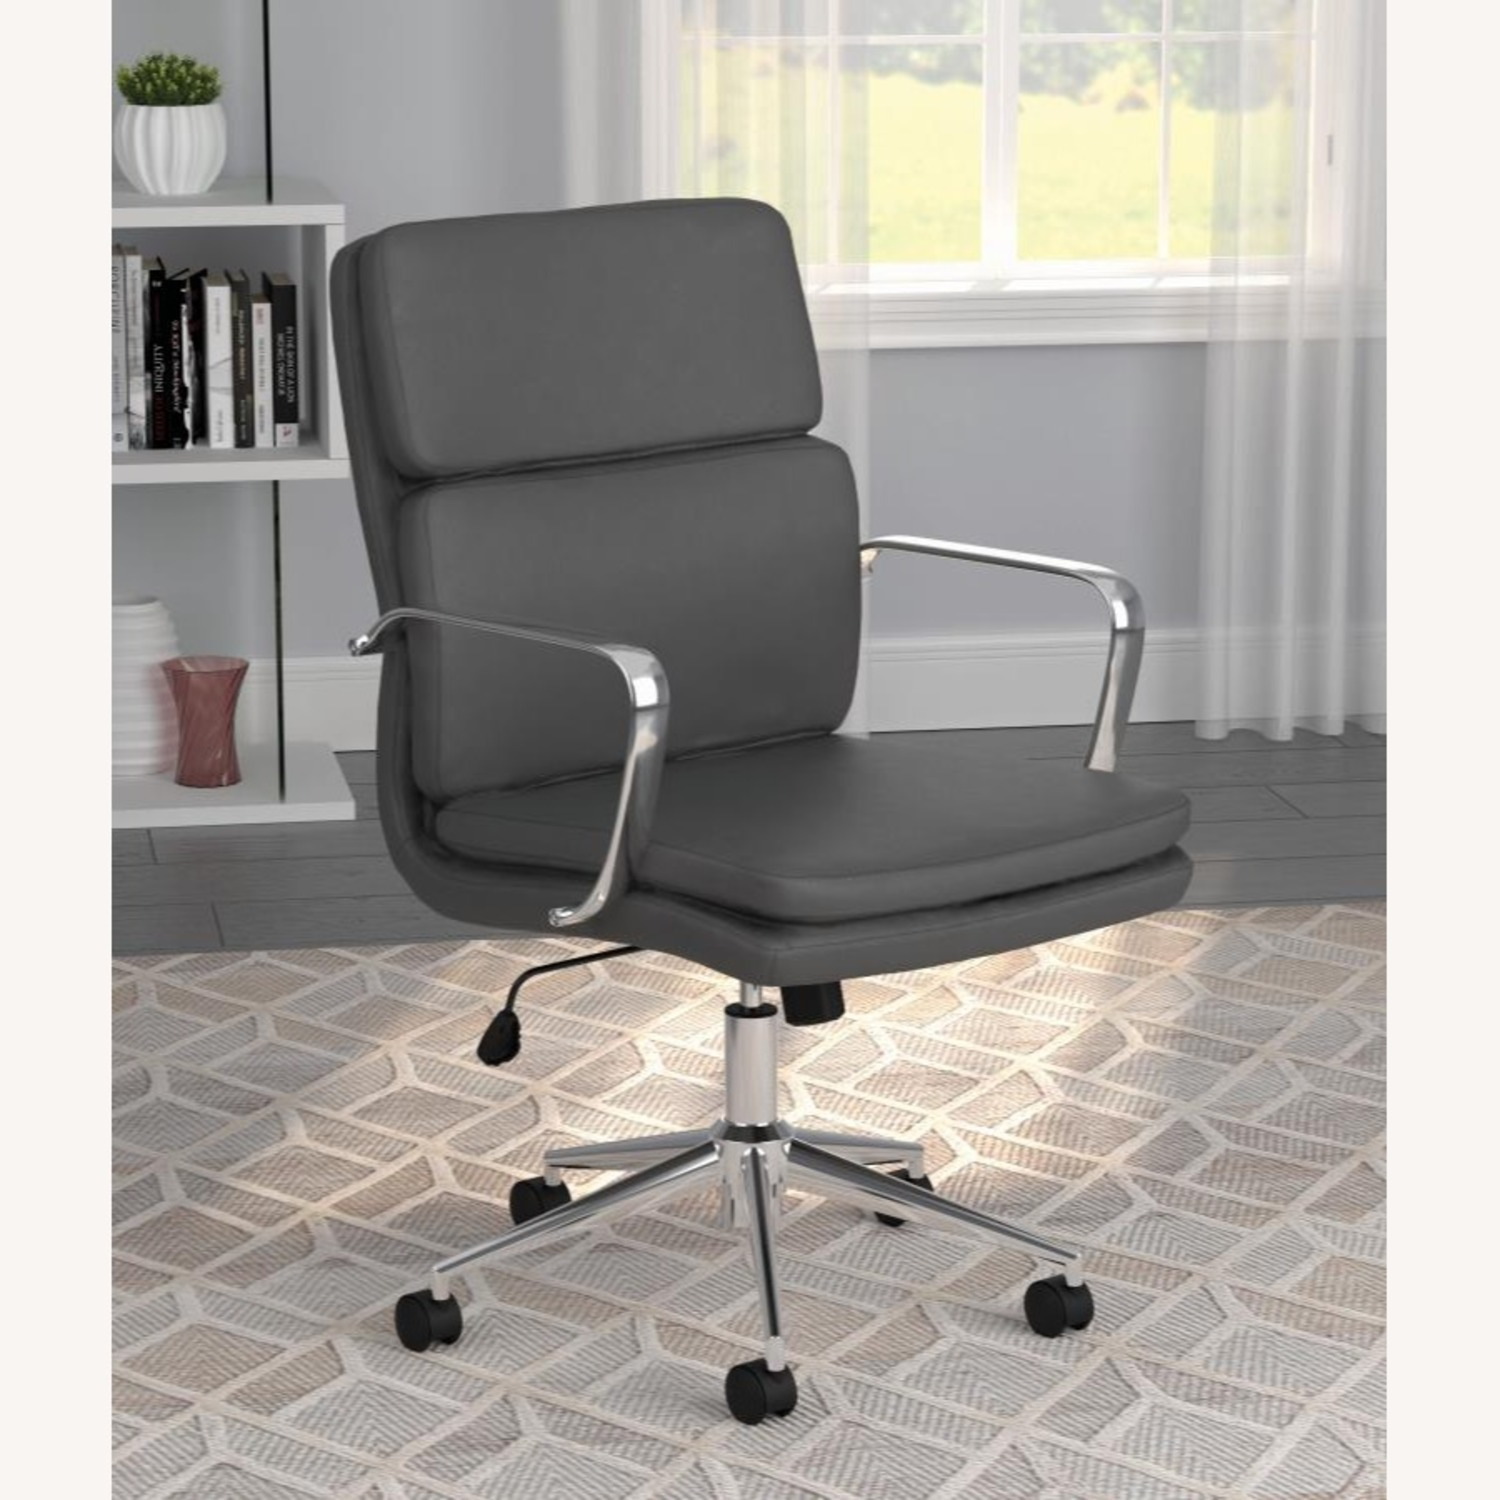 Office Chair In Grey Leatherette & Chrome Finish - image-7